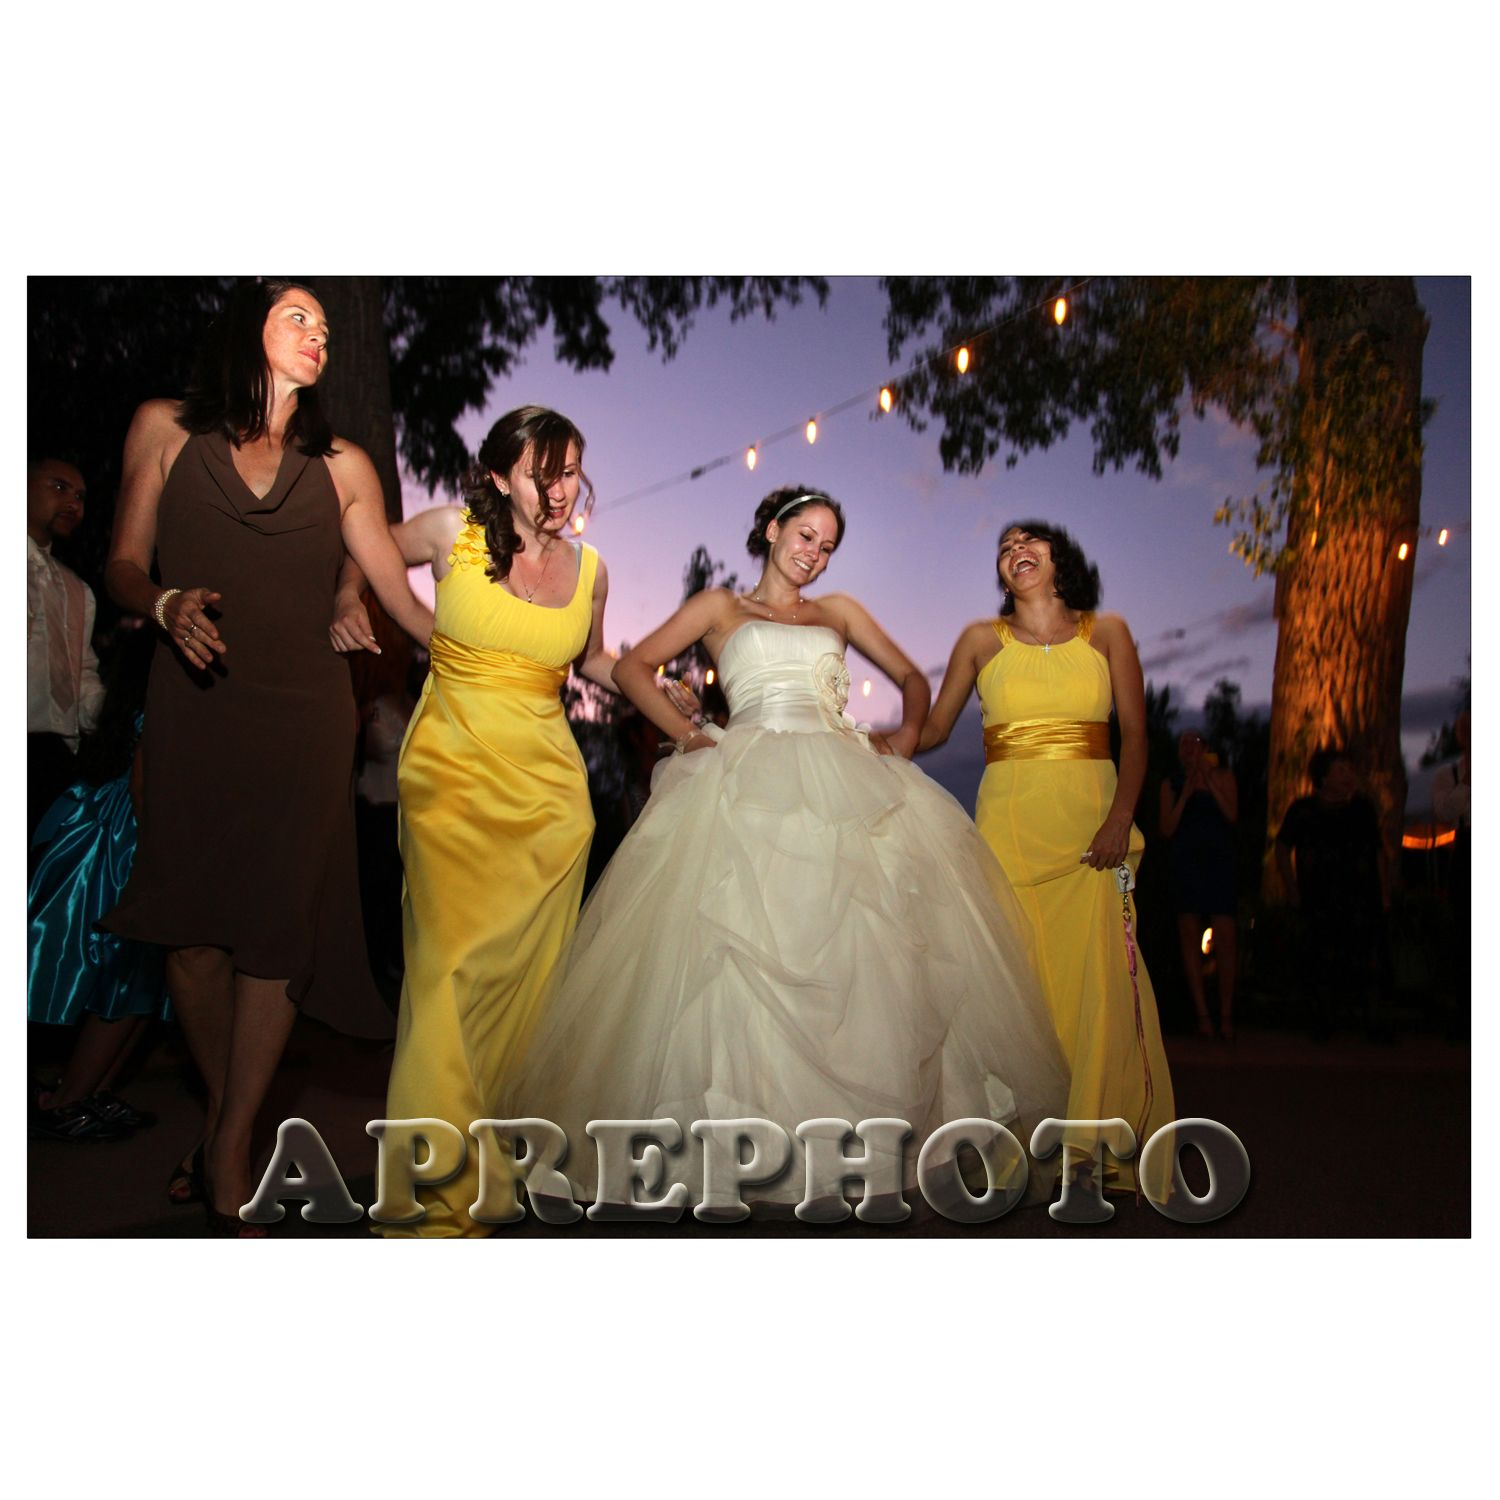 https://www.facebook.com/pages/Apre-Photography-Weddings/168684439837002?ref=hl    Colorado Springs, CO wedding venue Secret Garden    Apre Photography 719-594-9898